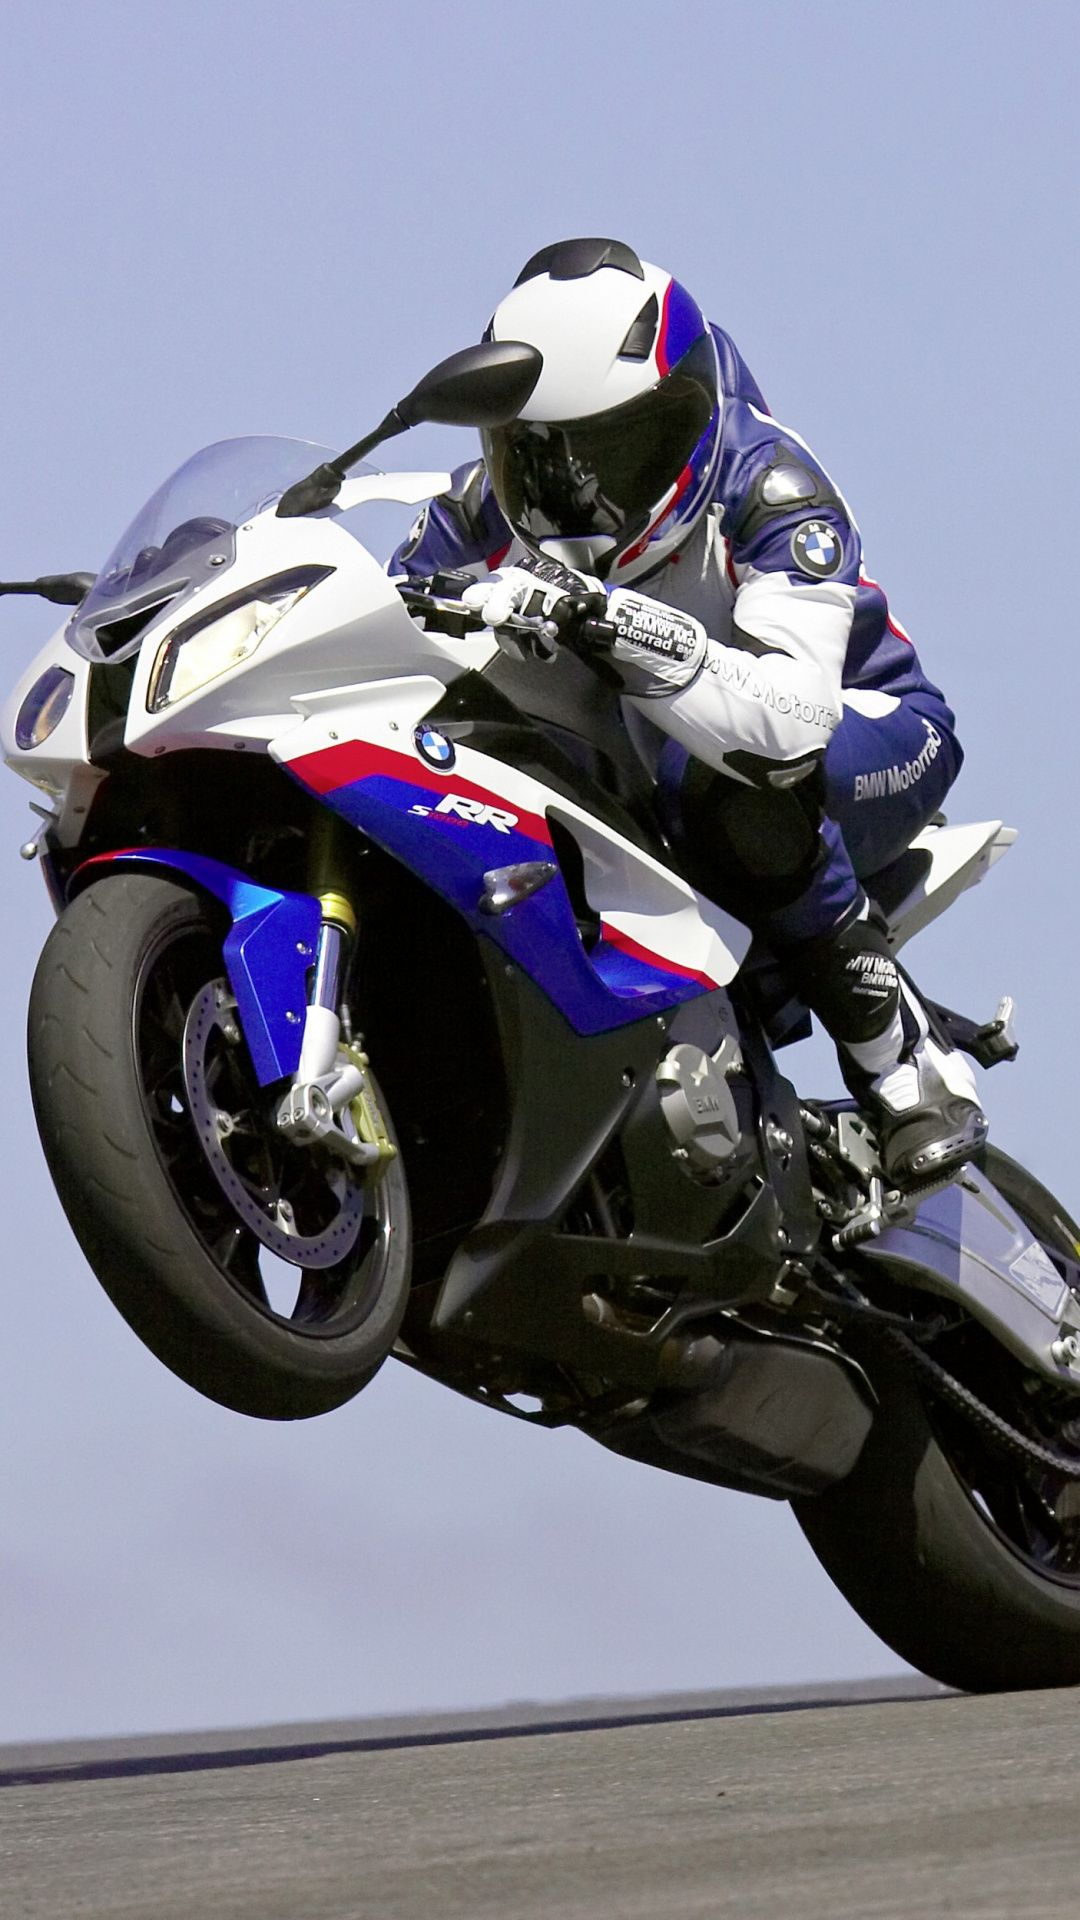 Wallpapers Race Track Motorcycling Bmw S1000rr Racing Motorcycle Bmw S1000rr Bmw Motorcycle S1000rr Motorcycle